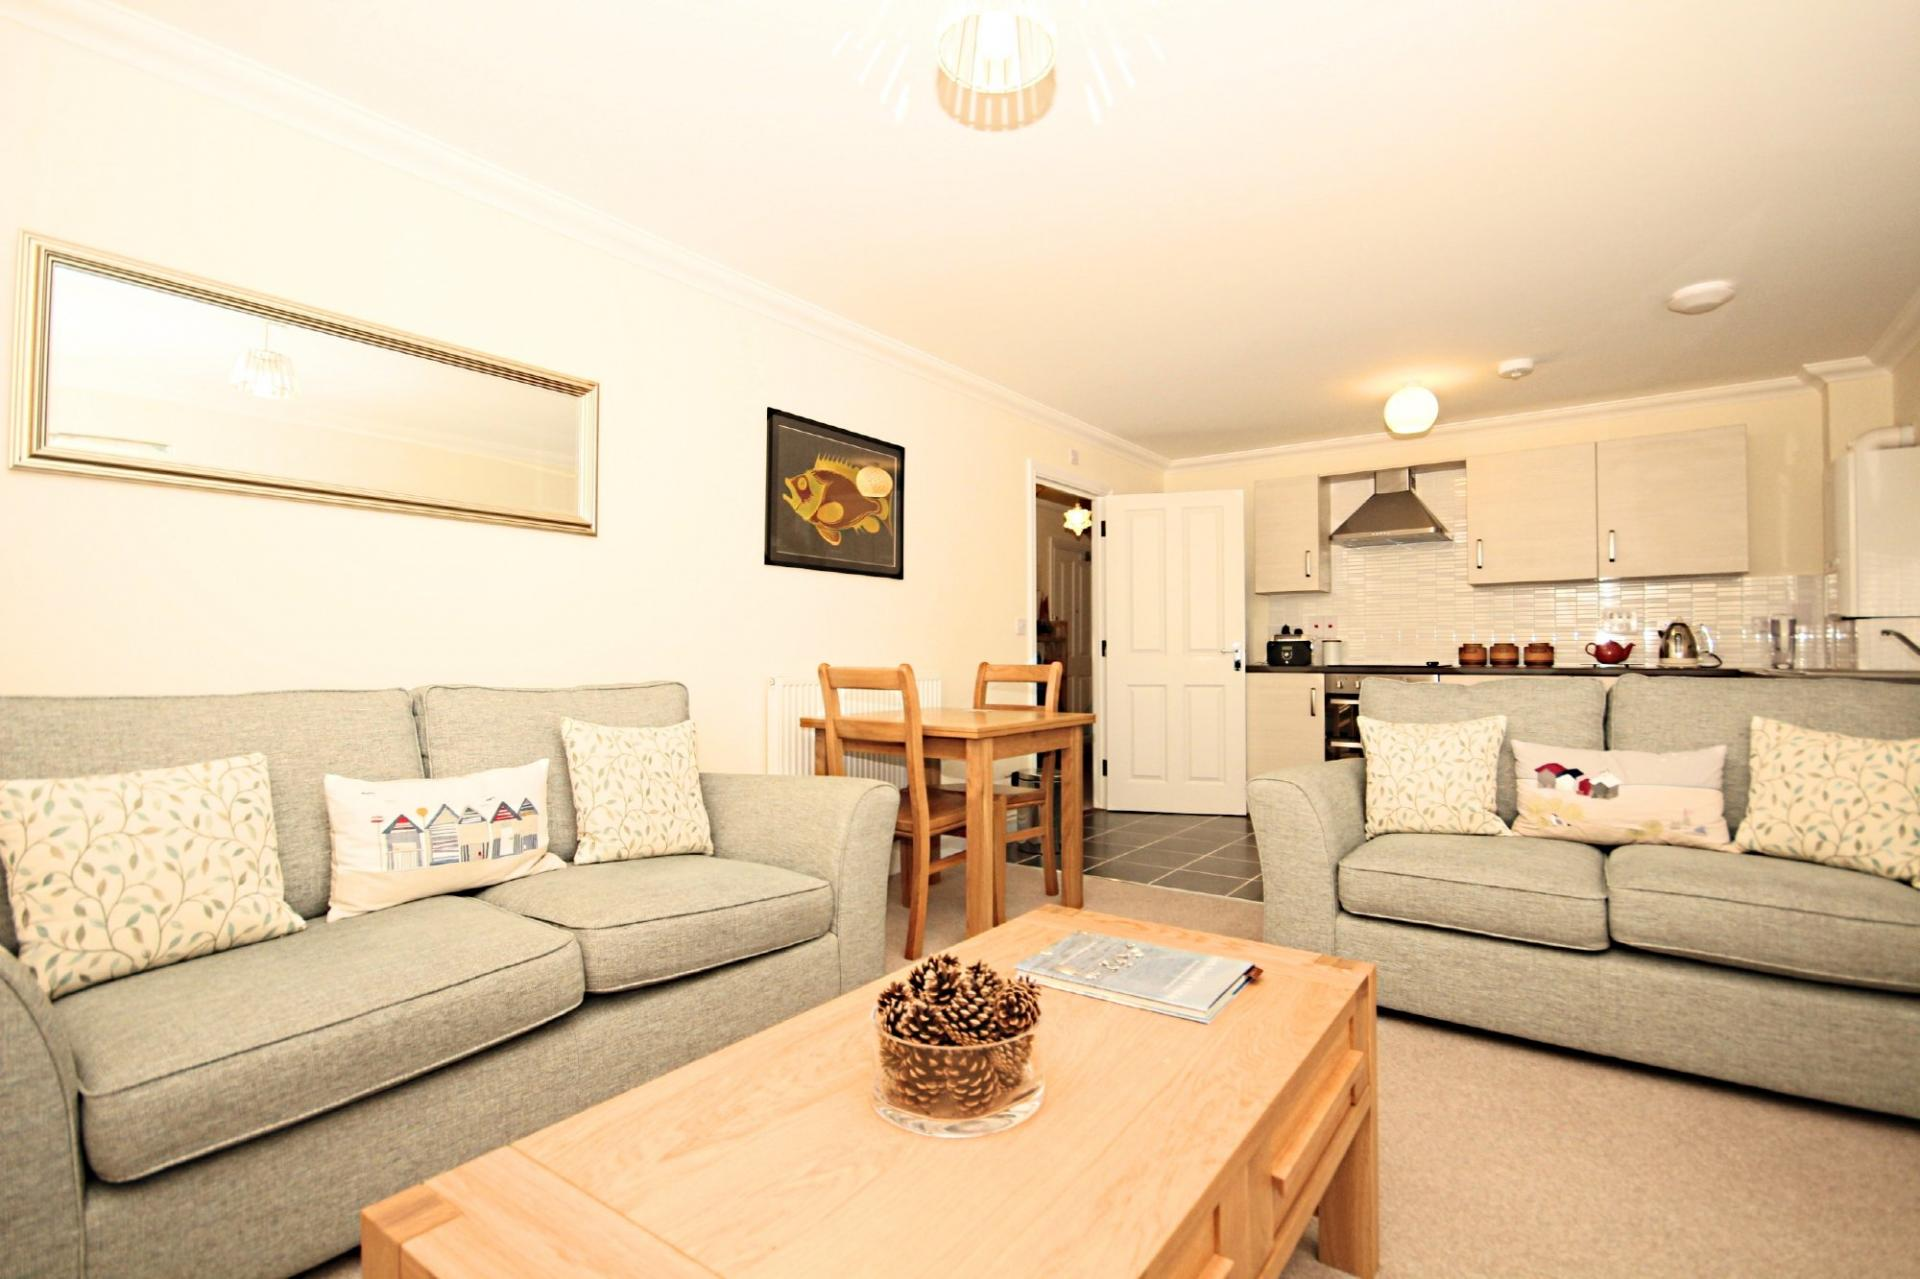 2 bedroom apartment for sale in norfolk for 2 bedroom apartments in norfolk